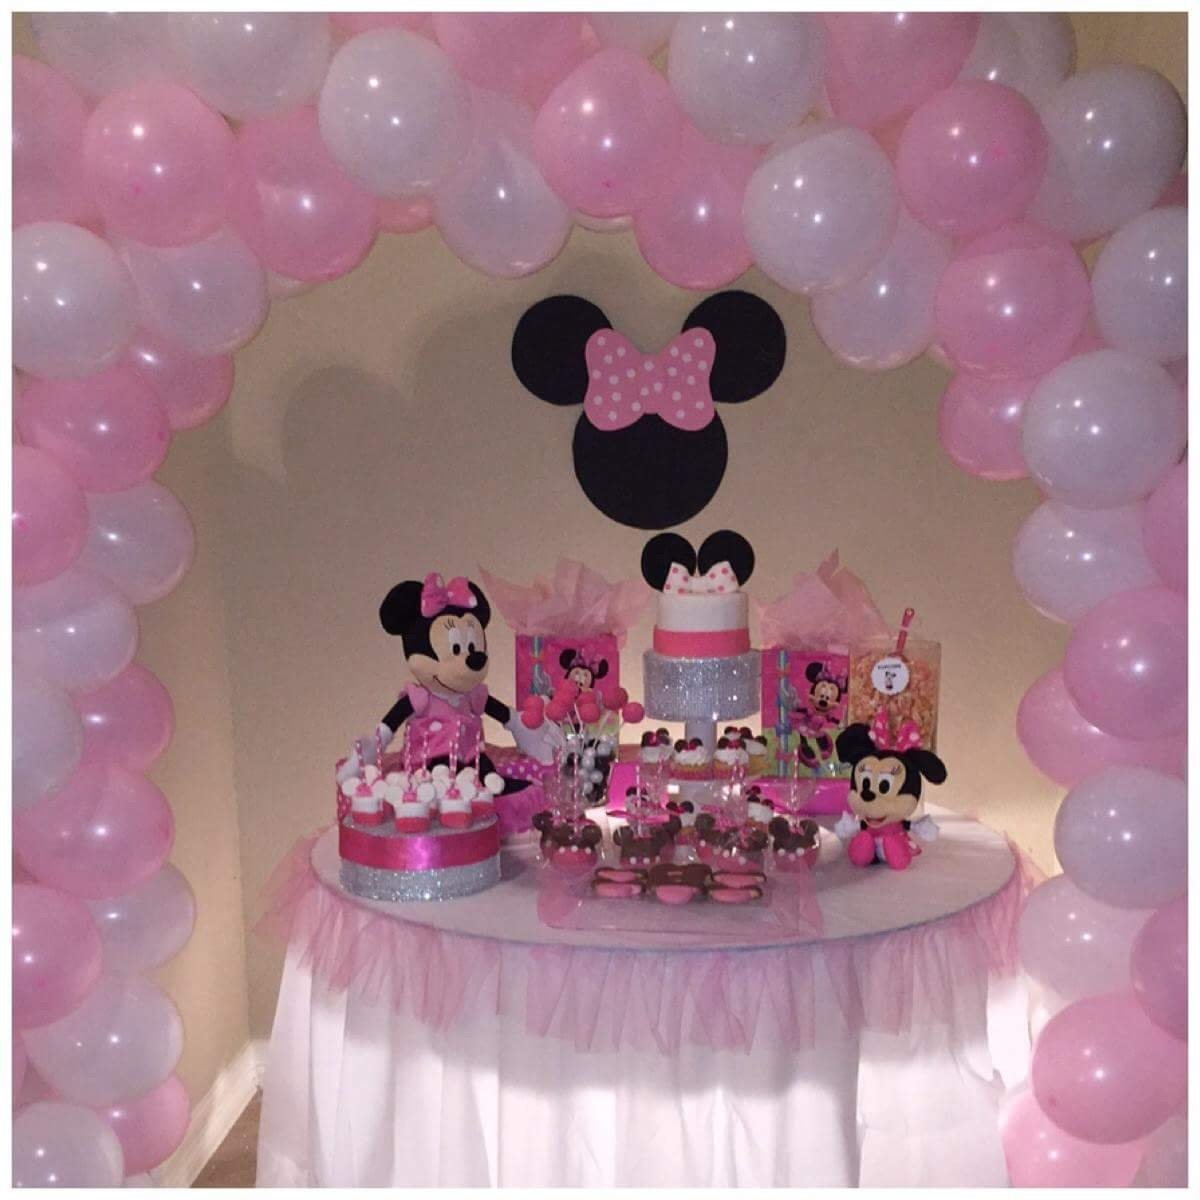 10 Perfect Baby Minnie Mouse Birthday Party Ideas minnie mouse party table and pink and white balloon archthe 1